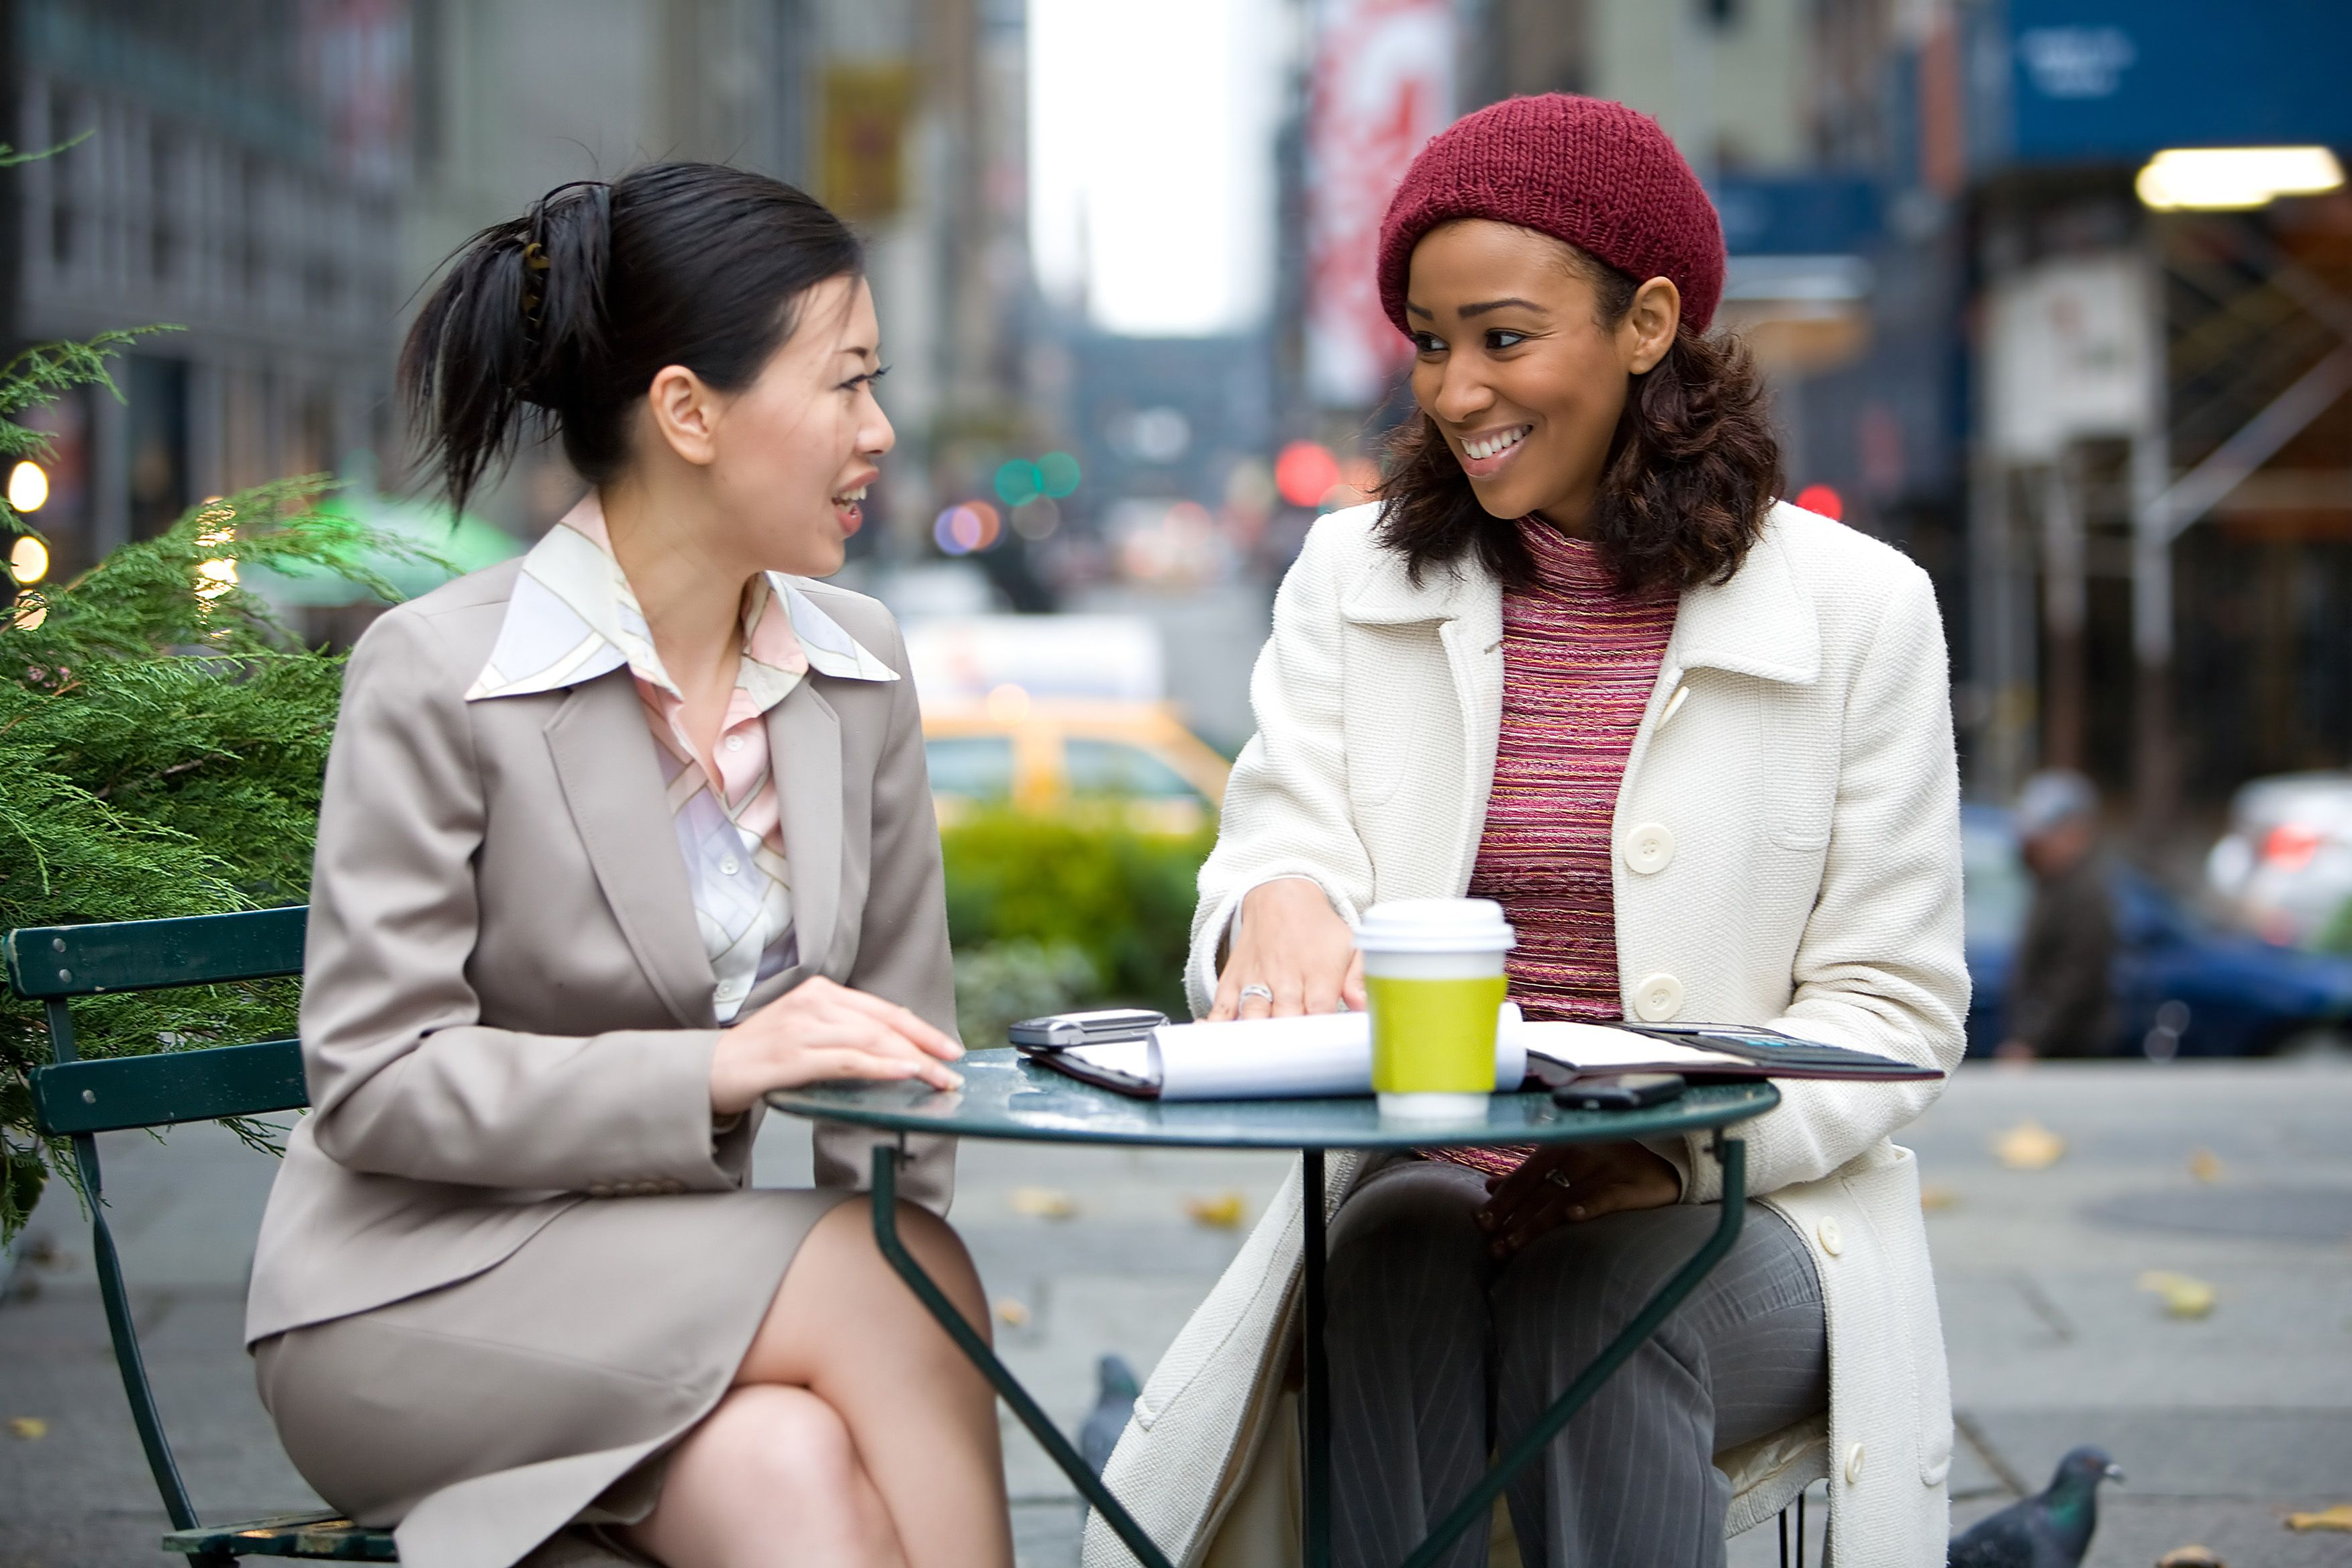 Two business women having a casual meeting or discussion in the city